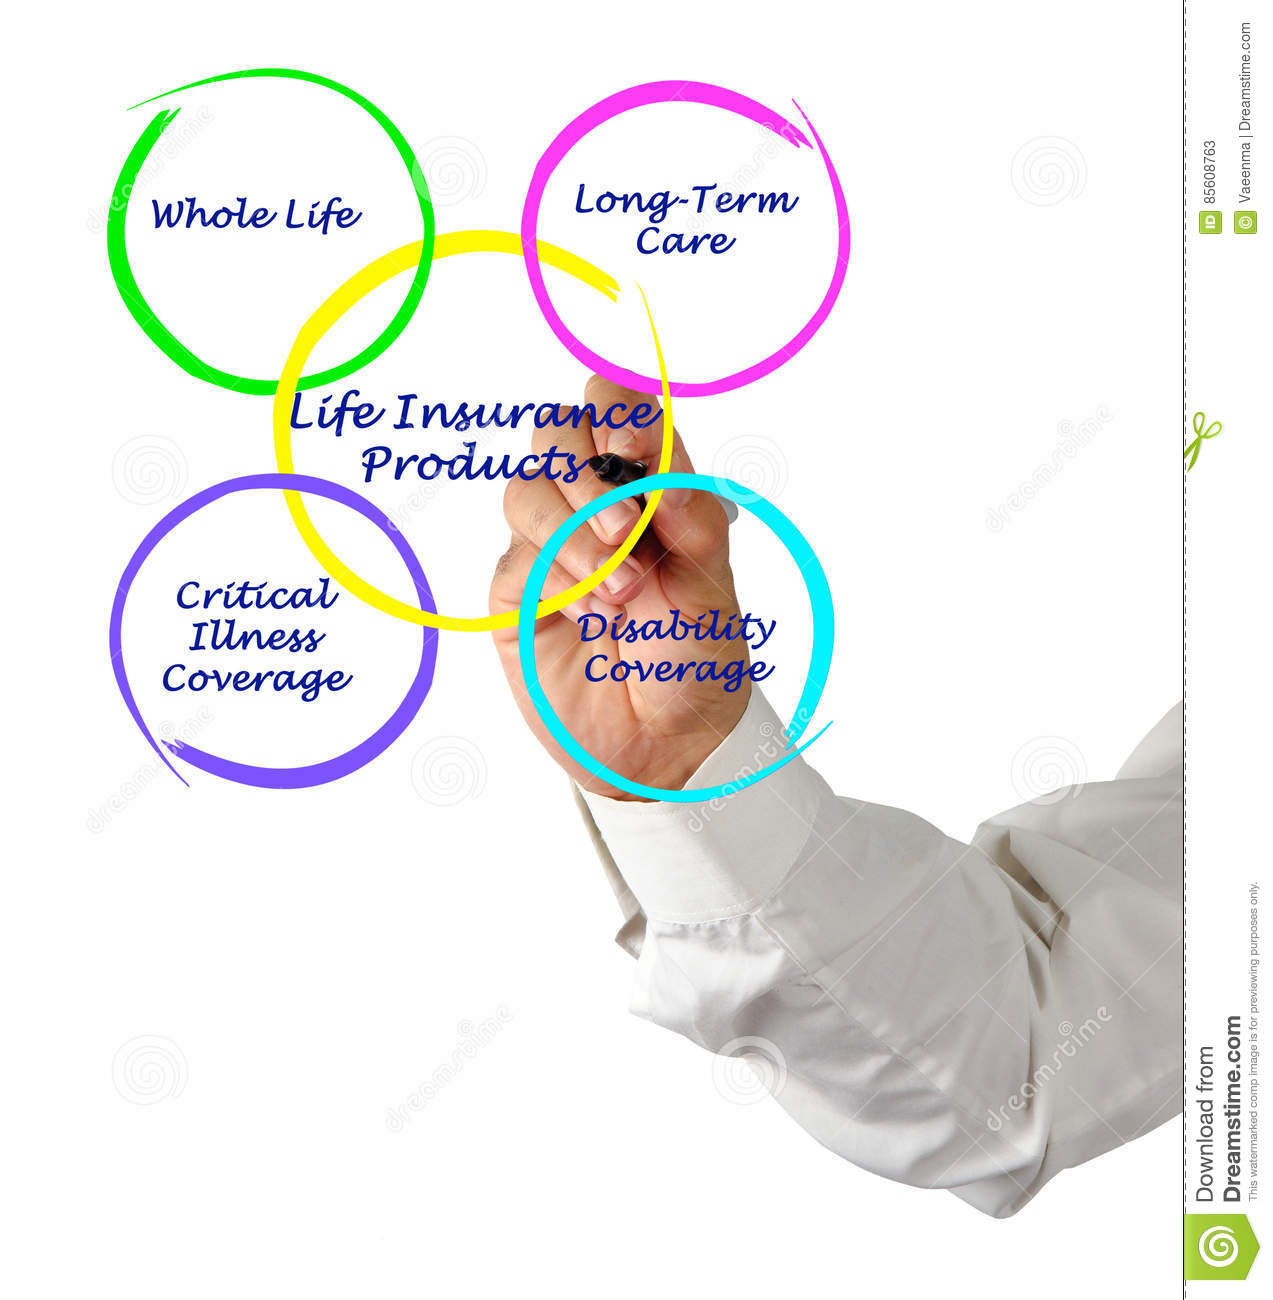 hight resolution of presenting diagram of life insurance products